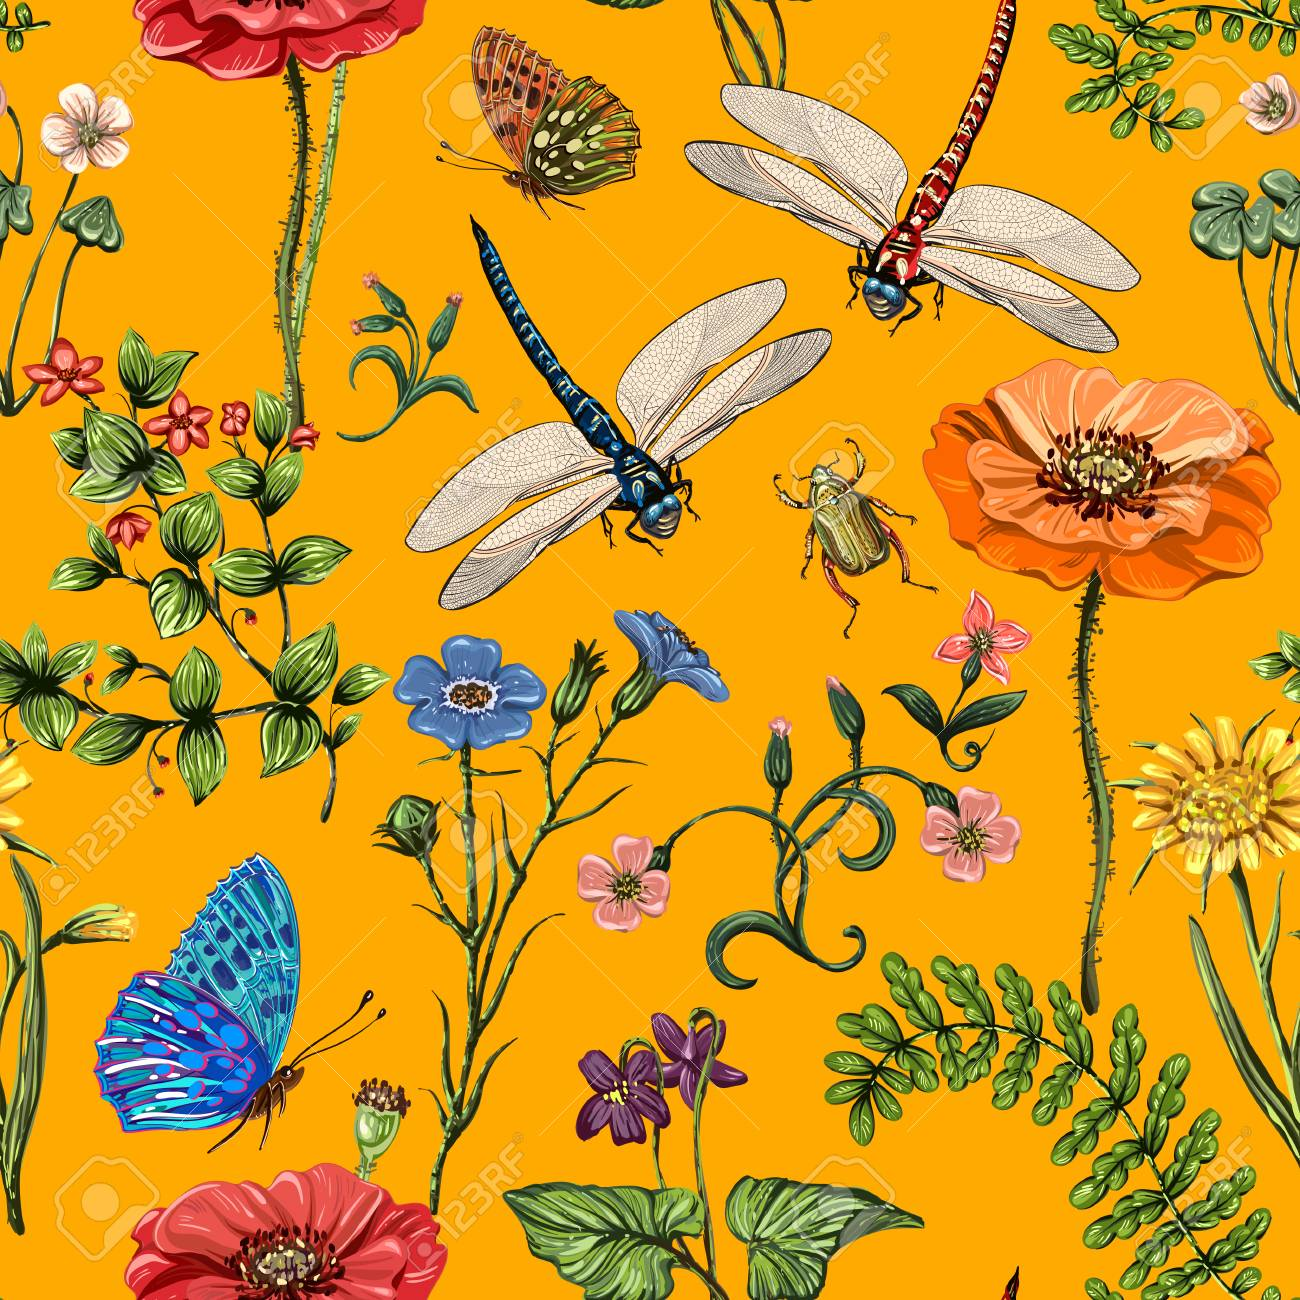 Summer Vector Seamless Pattern Botanical Wallpaper Plants Royalty Free Cliparts Vectors And Stock Illustration Image 94567277